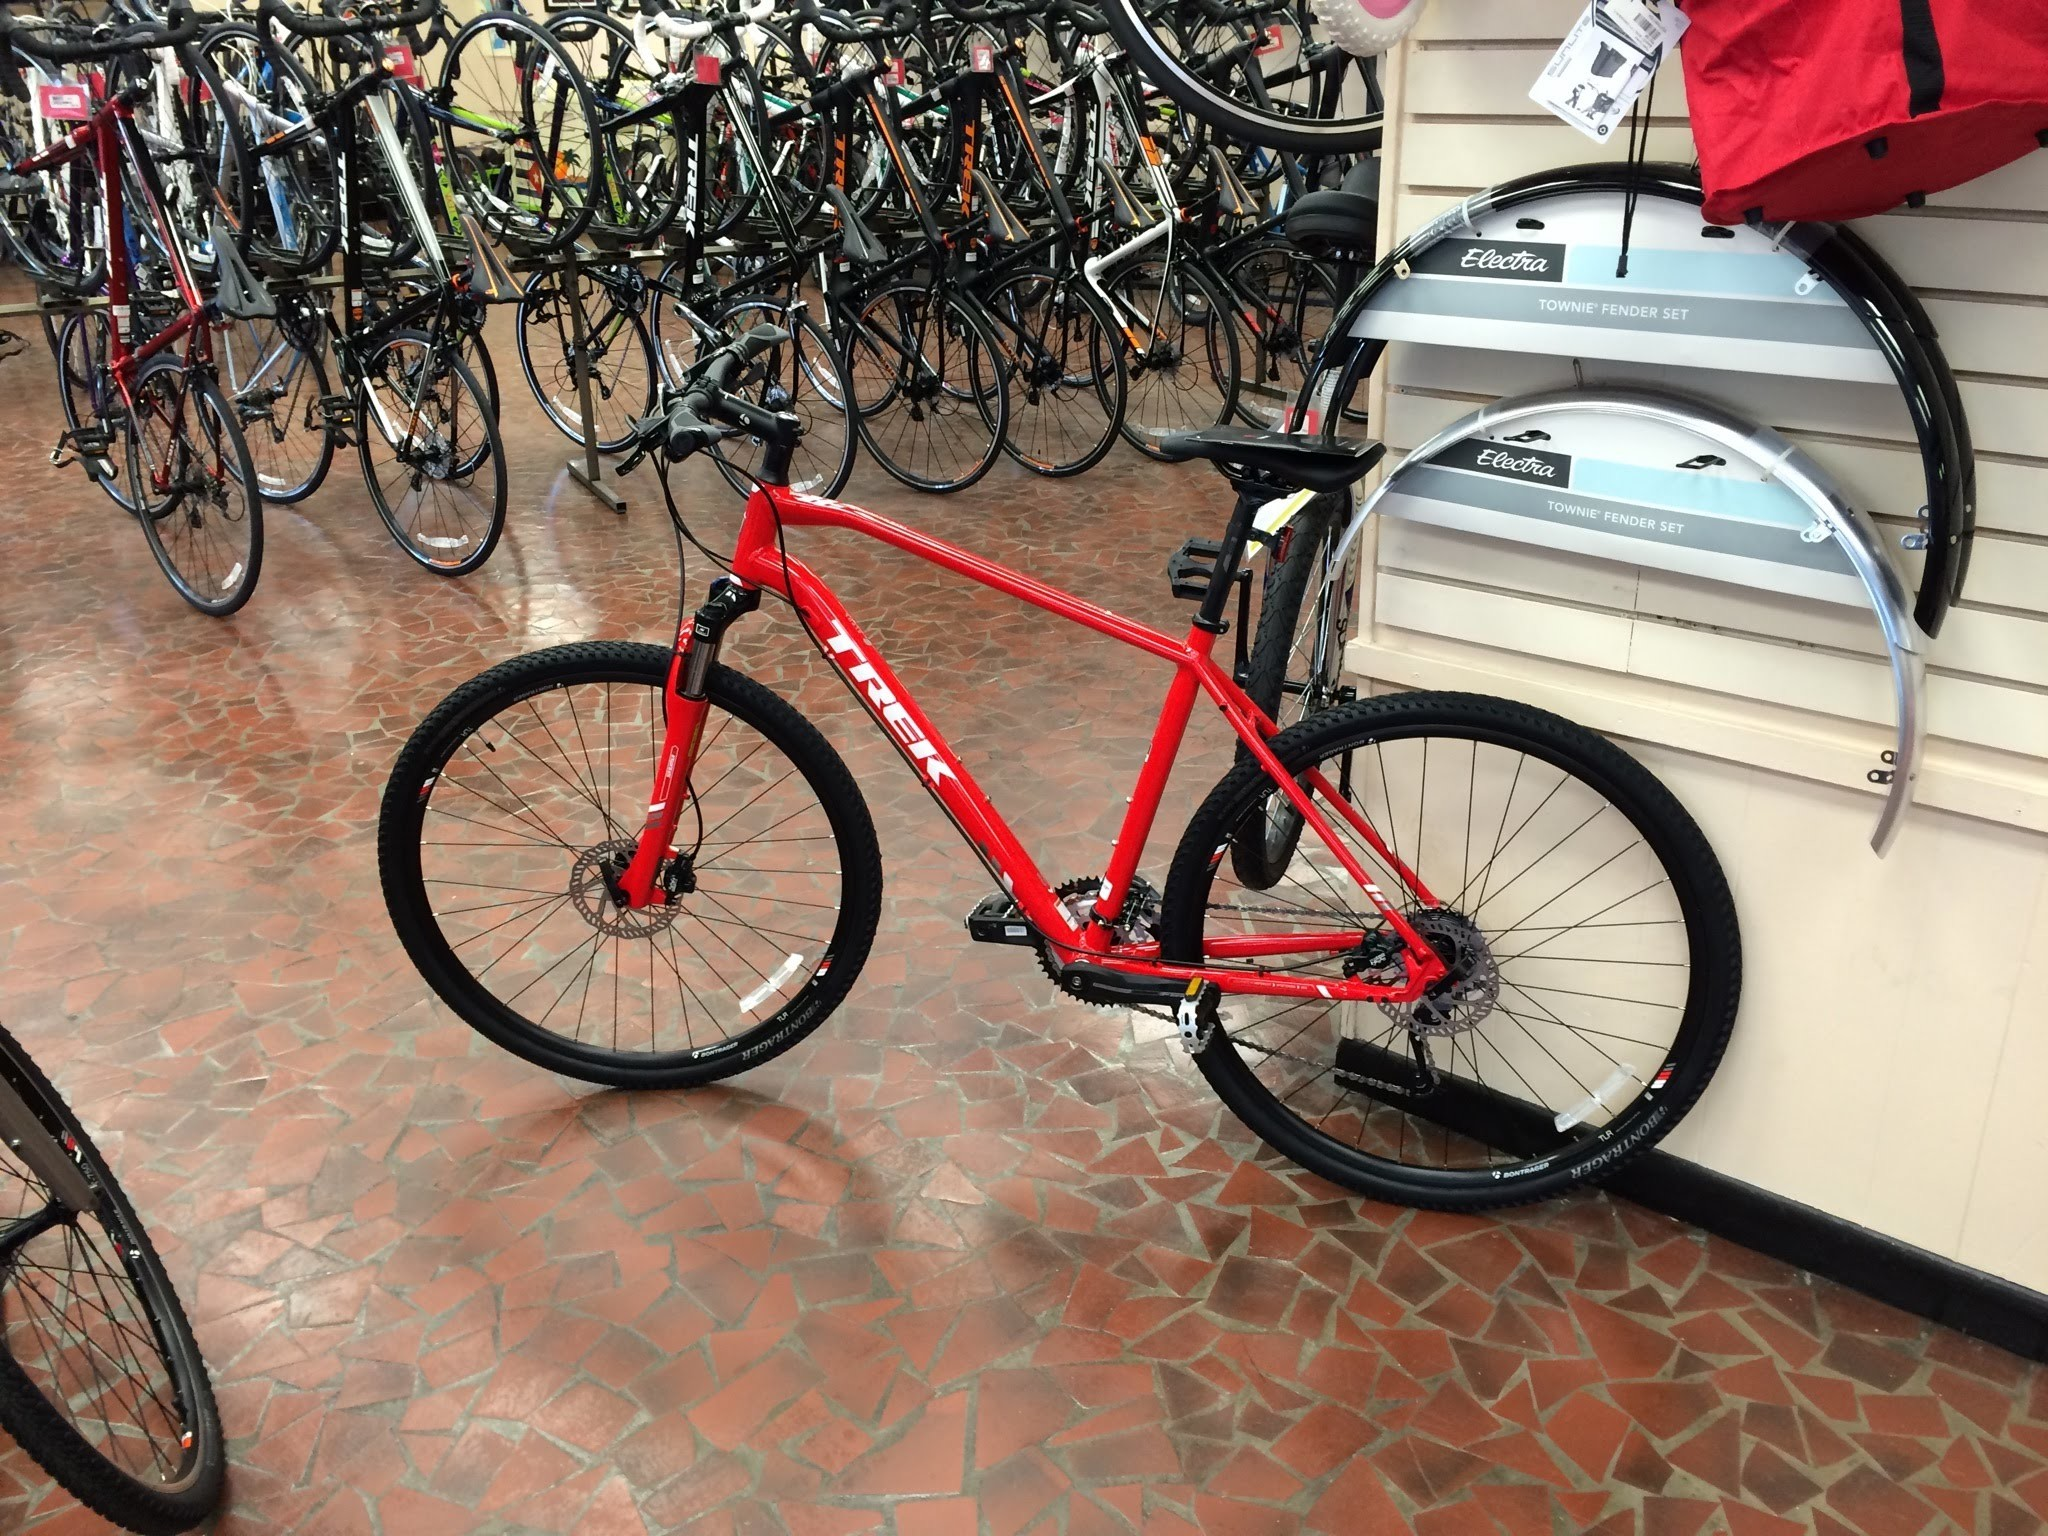 Res: 2048x1536, New Trek Bicycle Dual Sport 8.4 in Viper Red Has Arrived! - June 23, 2015 -  YouTube